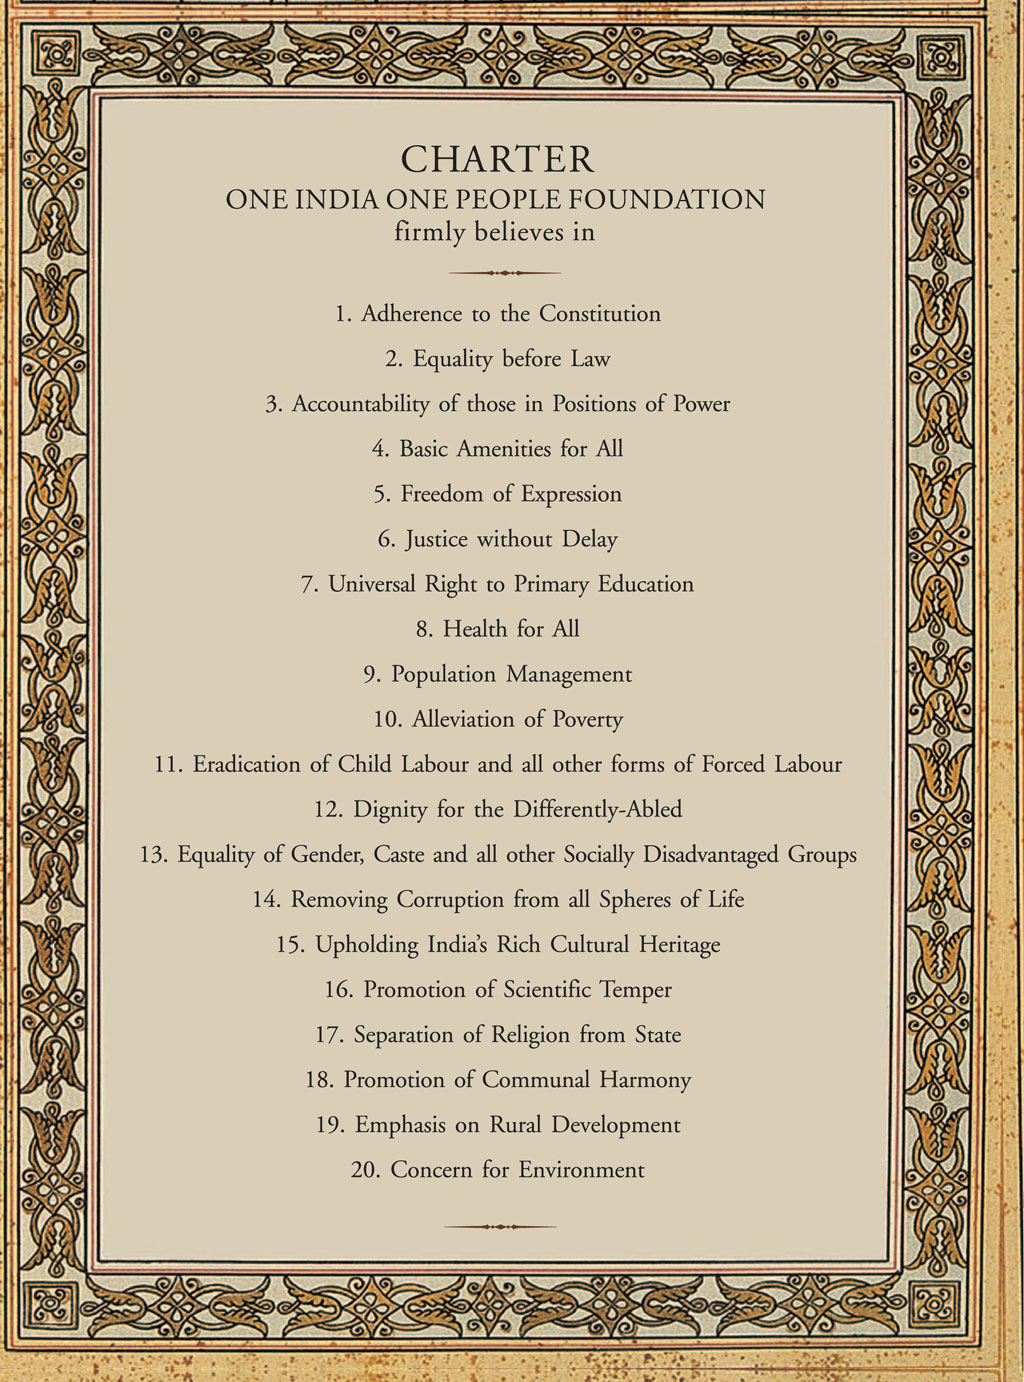 Charter - One India One People Foundation